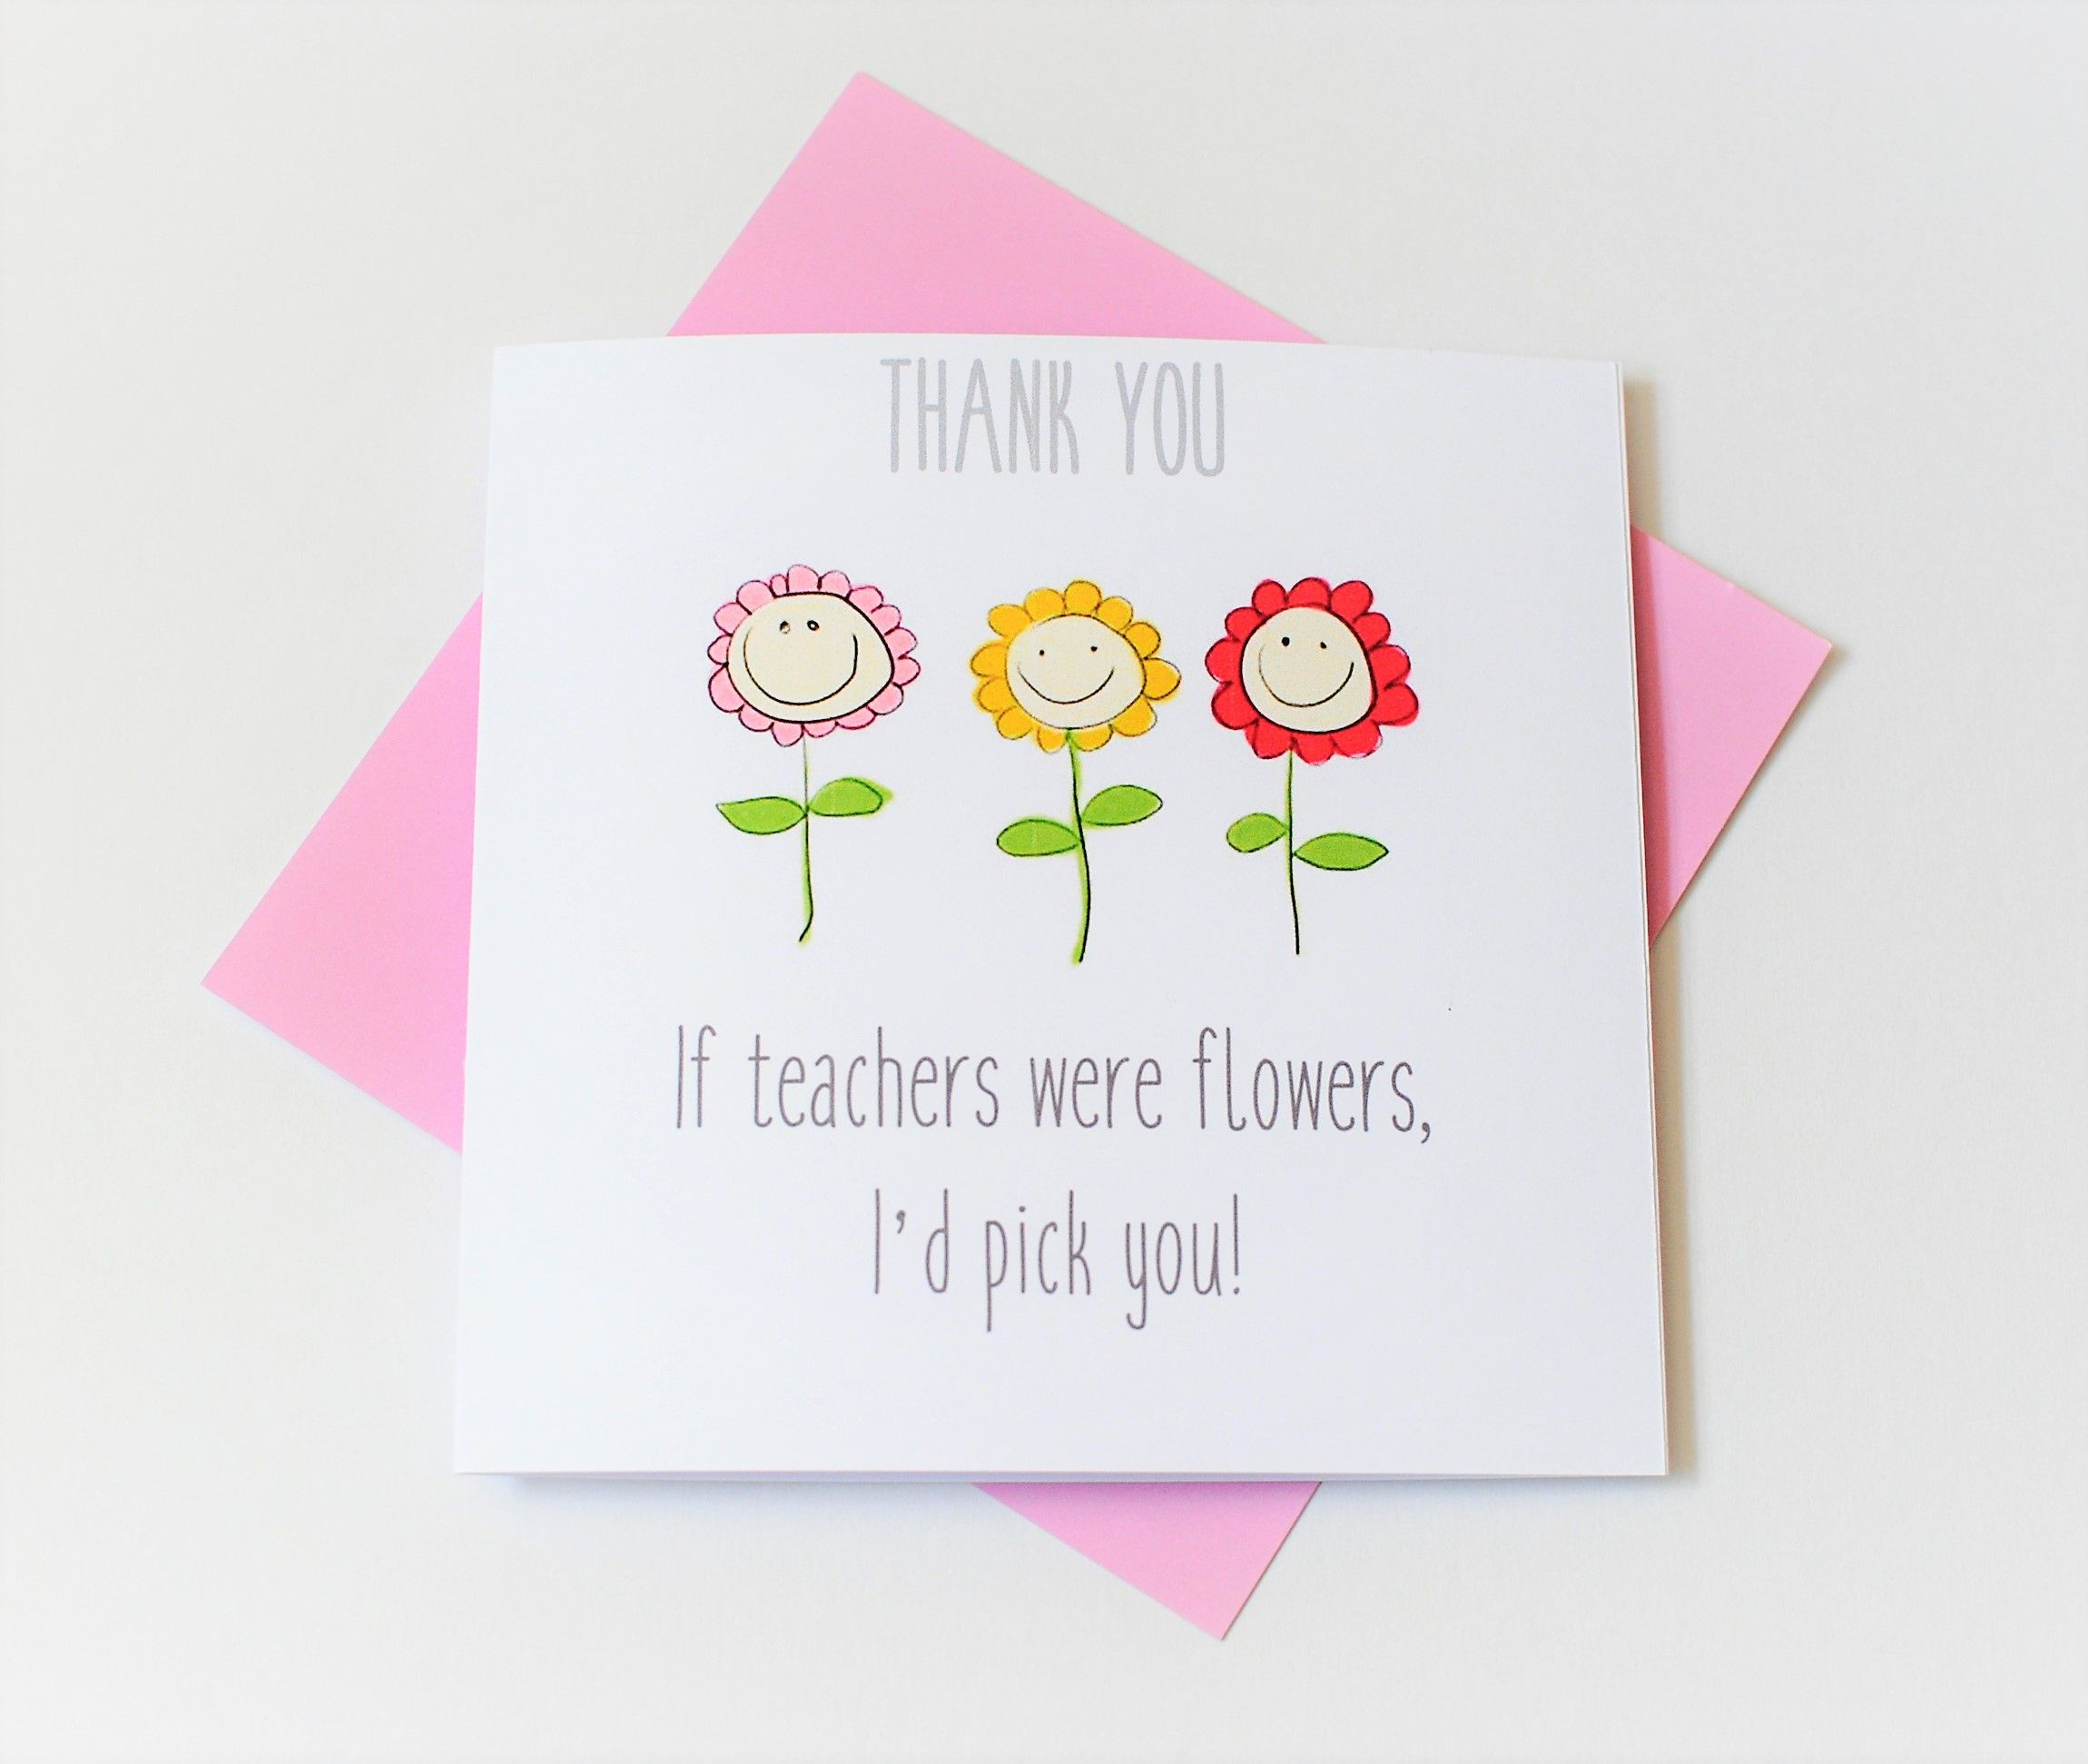 Cute Teacher Card Good One Pinterest Teacher Thank You Cards